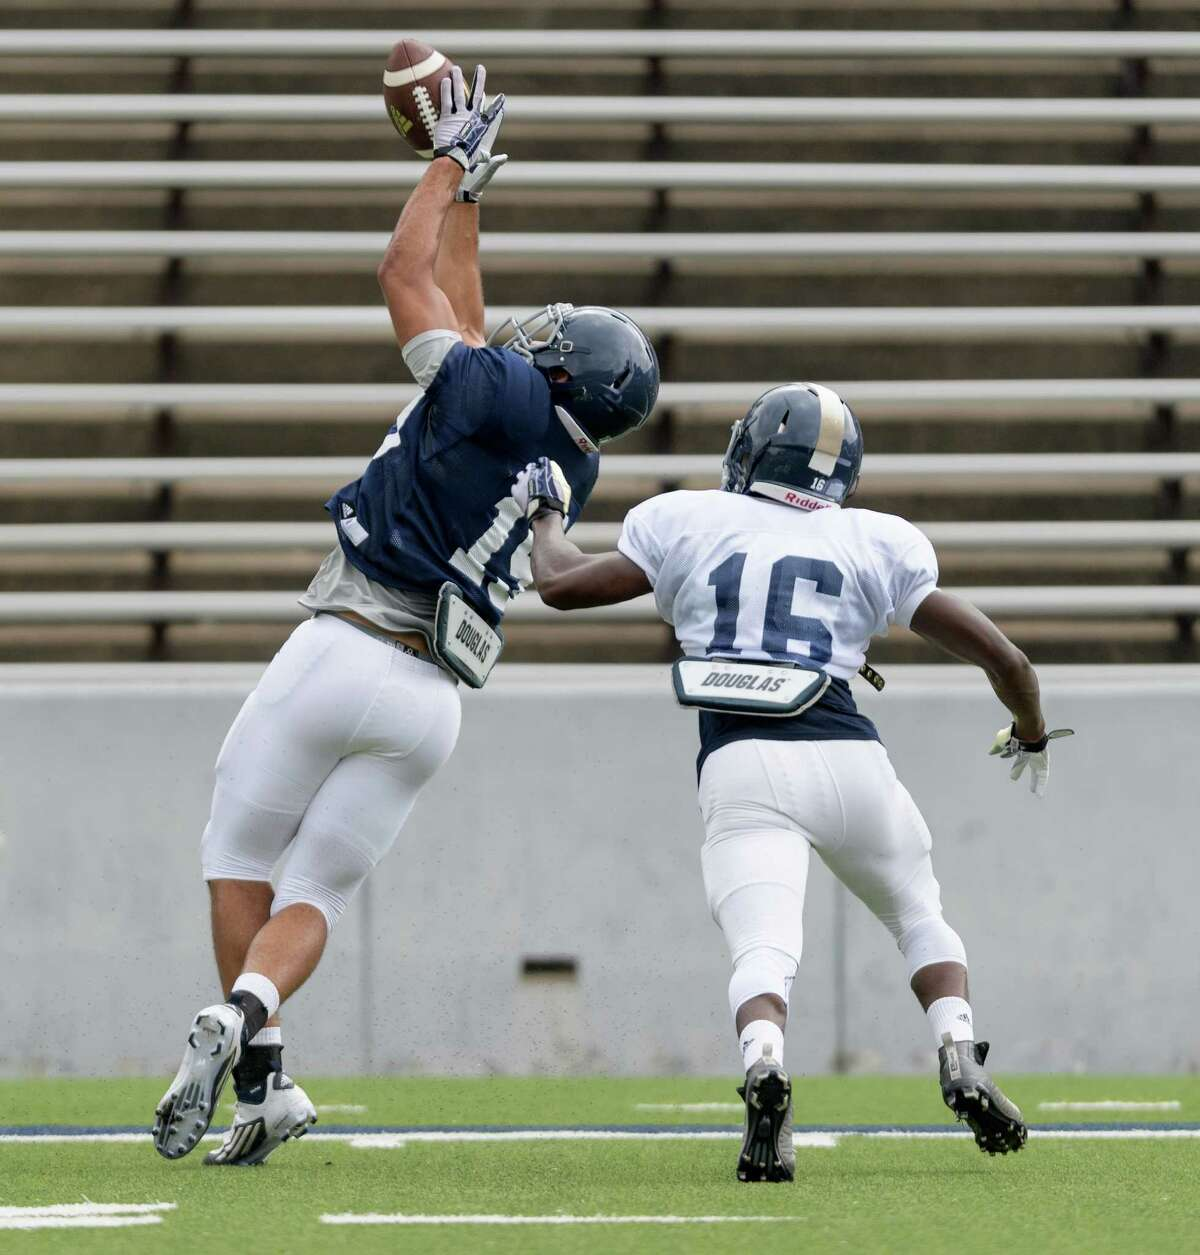 Kylen Grayson (19) of the Rice Owls attempts a reception over Josh Cummings (16) in an inter squad scrimmage on Saturday, August 13, 2016 at Rice Stadium in Houston Texas.